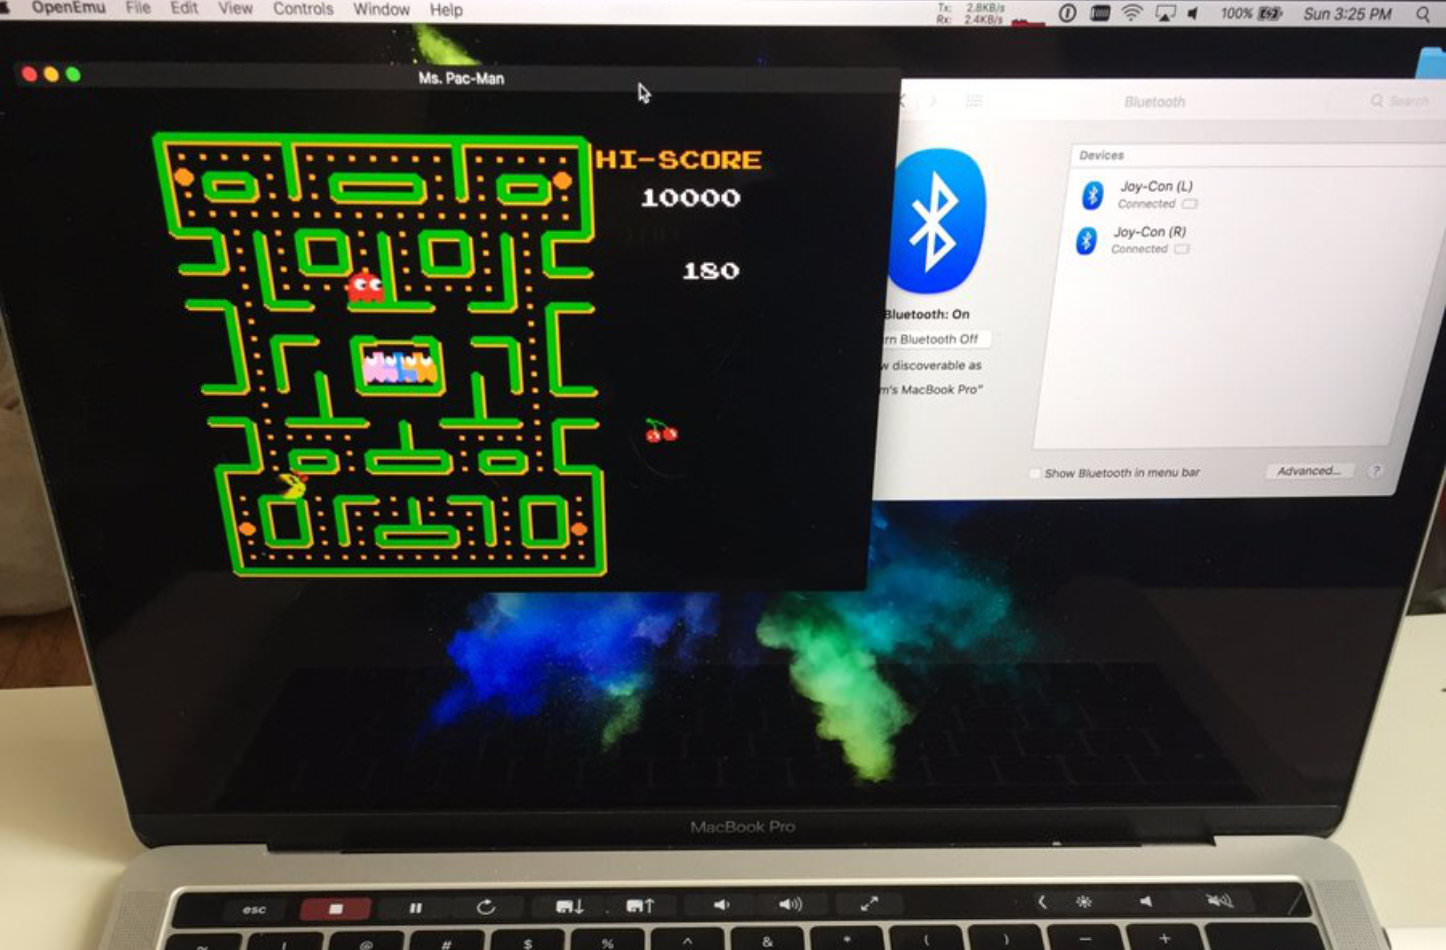 Using-Nintendo-Switch-Controllers-for-Mac.jpg